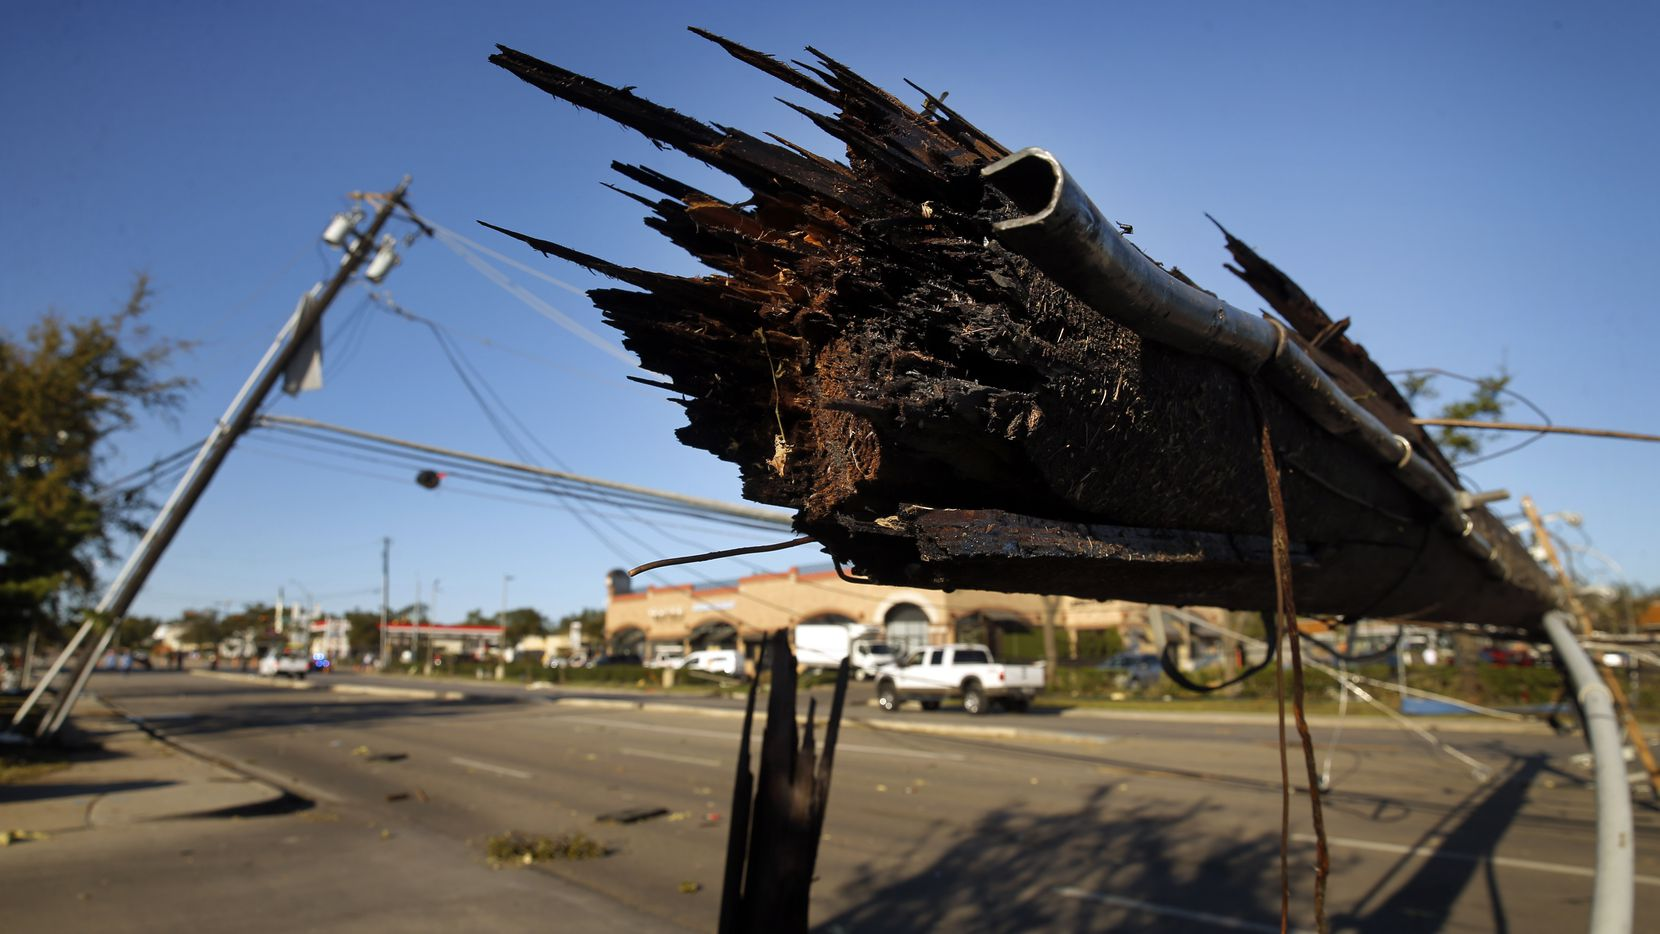 A sheared off utility pole lays over Preston Rd in Dallas near the Preston Royal shopping center Monday, October 21, 2019. A tornado tore through the entire neighborhood knocking down trees and ripping roofs from homes and businesses.